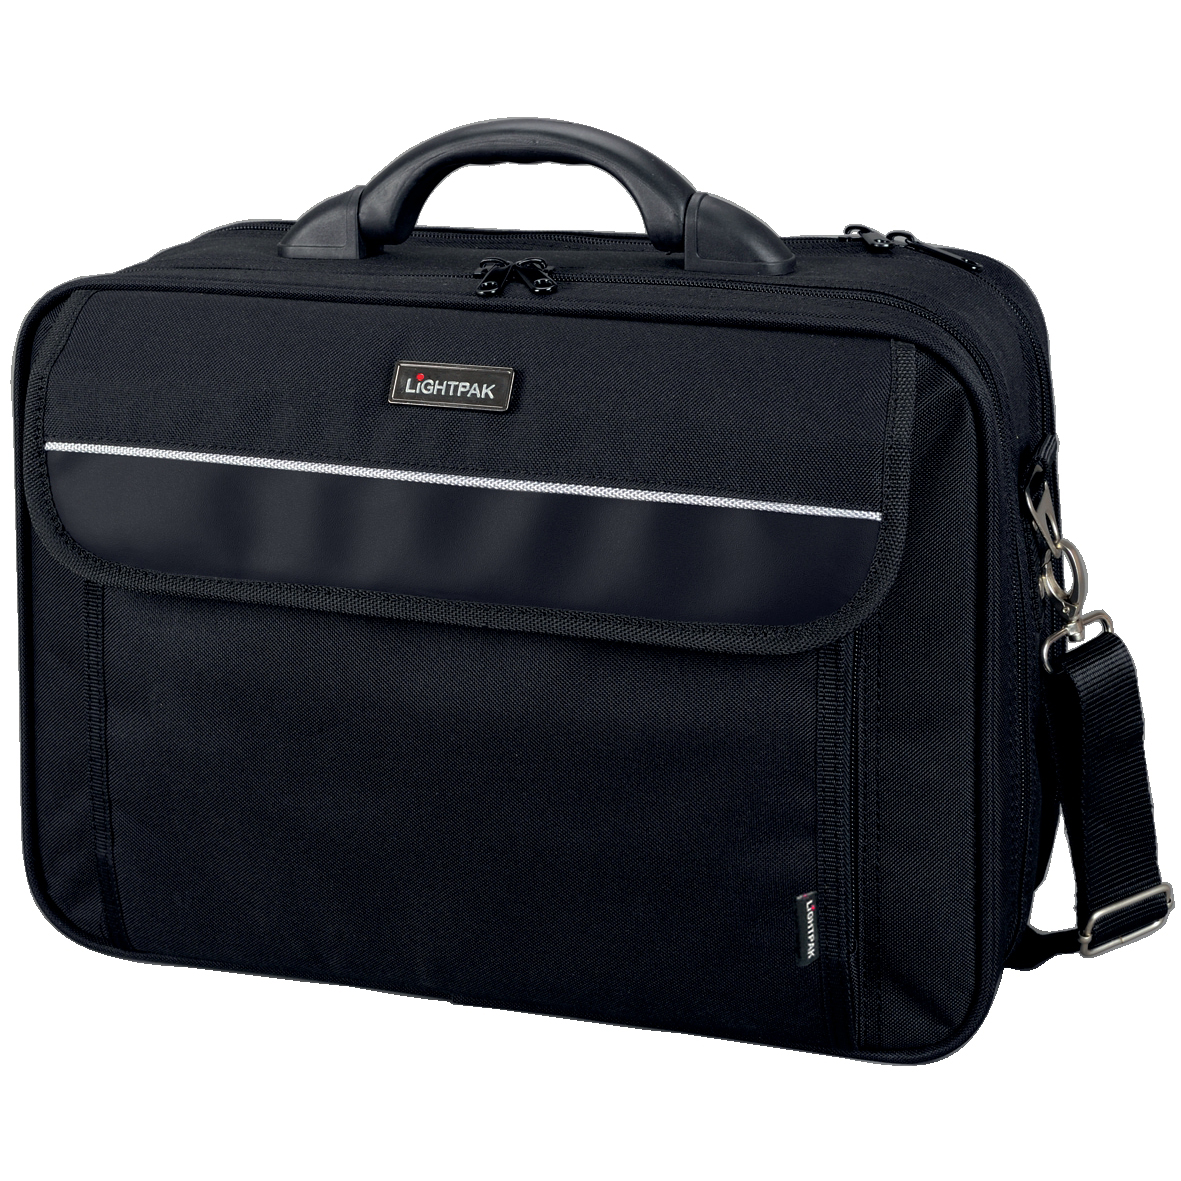 Briefcases & Luggage Lightpak Arco Laptop Bag Padded Nylon Capacity 17in Black Ref 46010